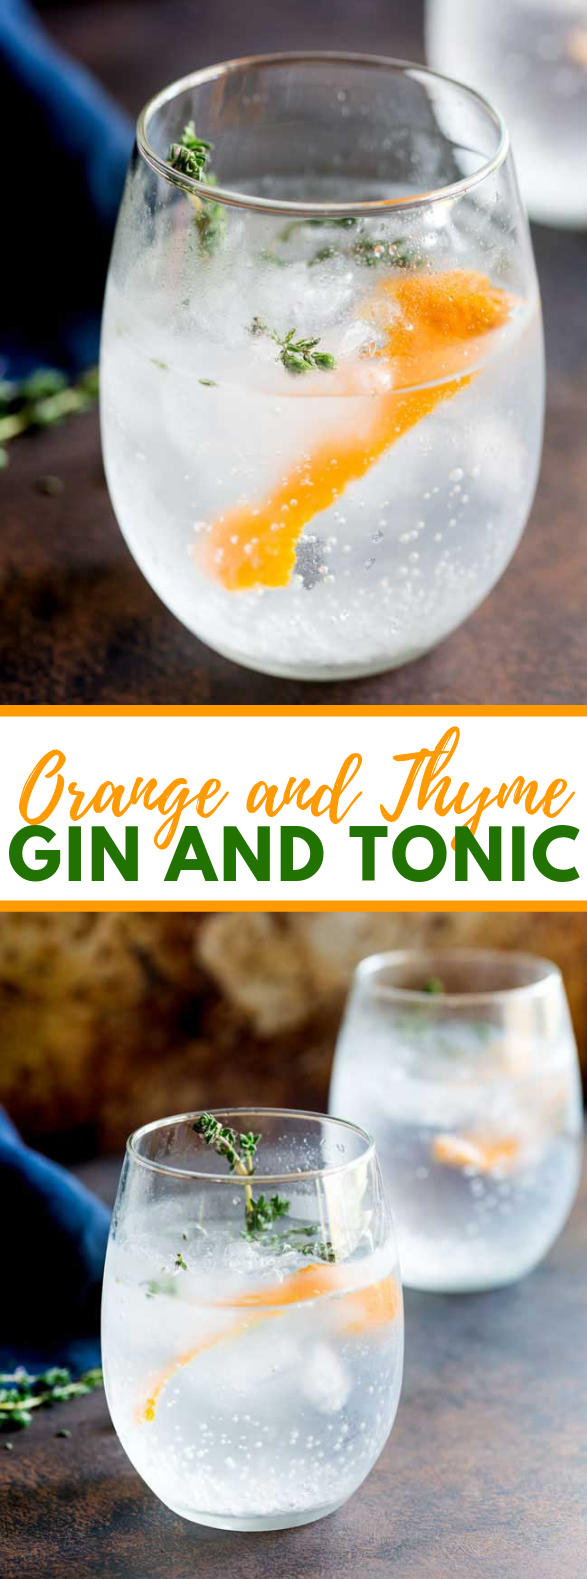 Orange and Thyme Gin and Tonic #drinks #cocktails